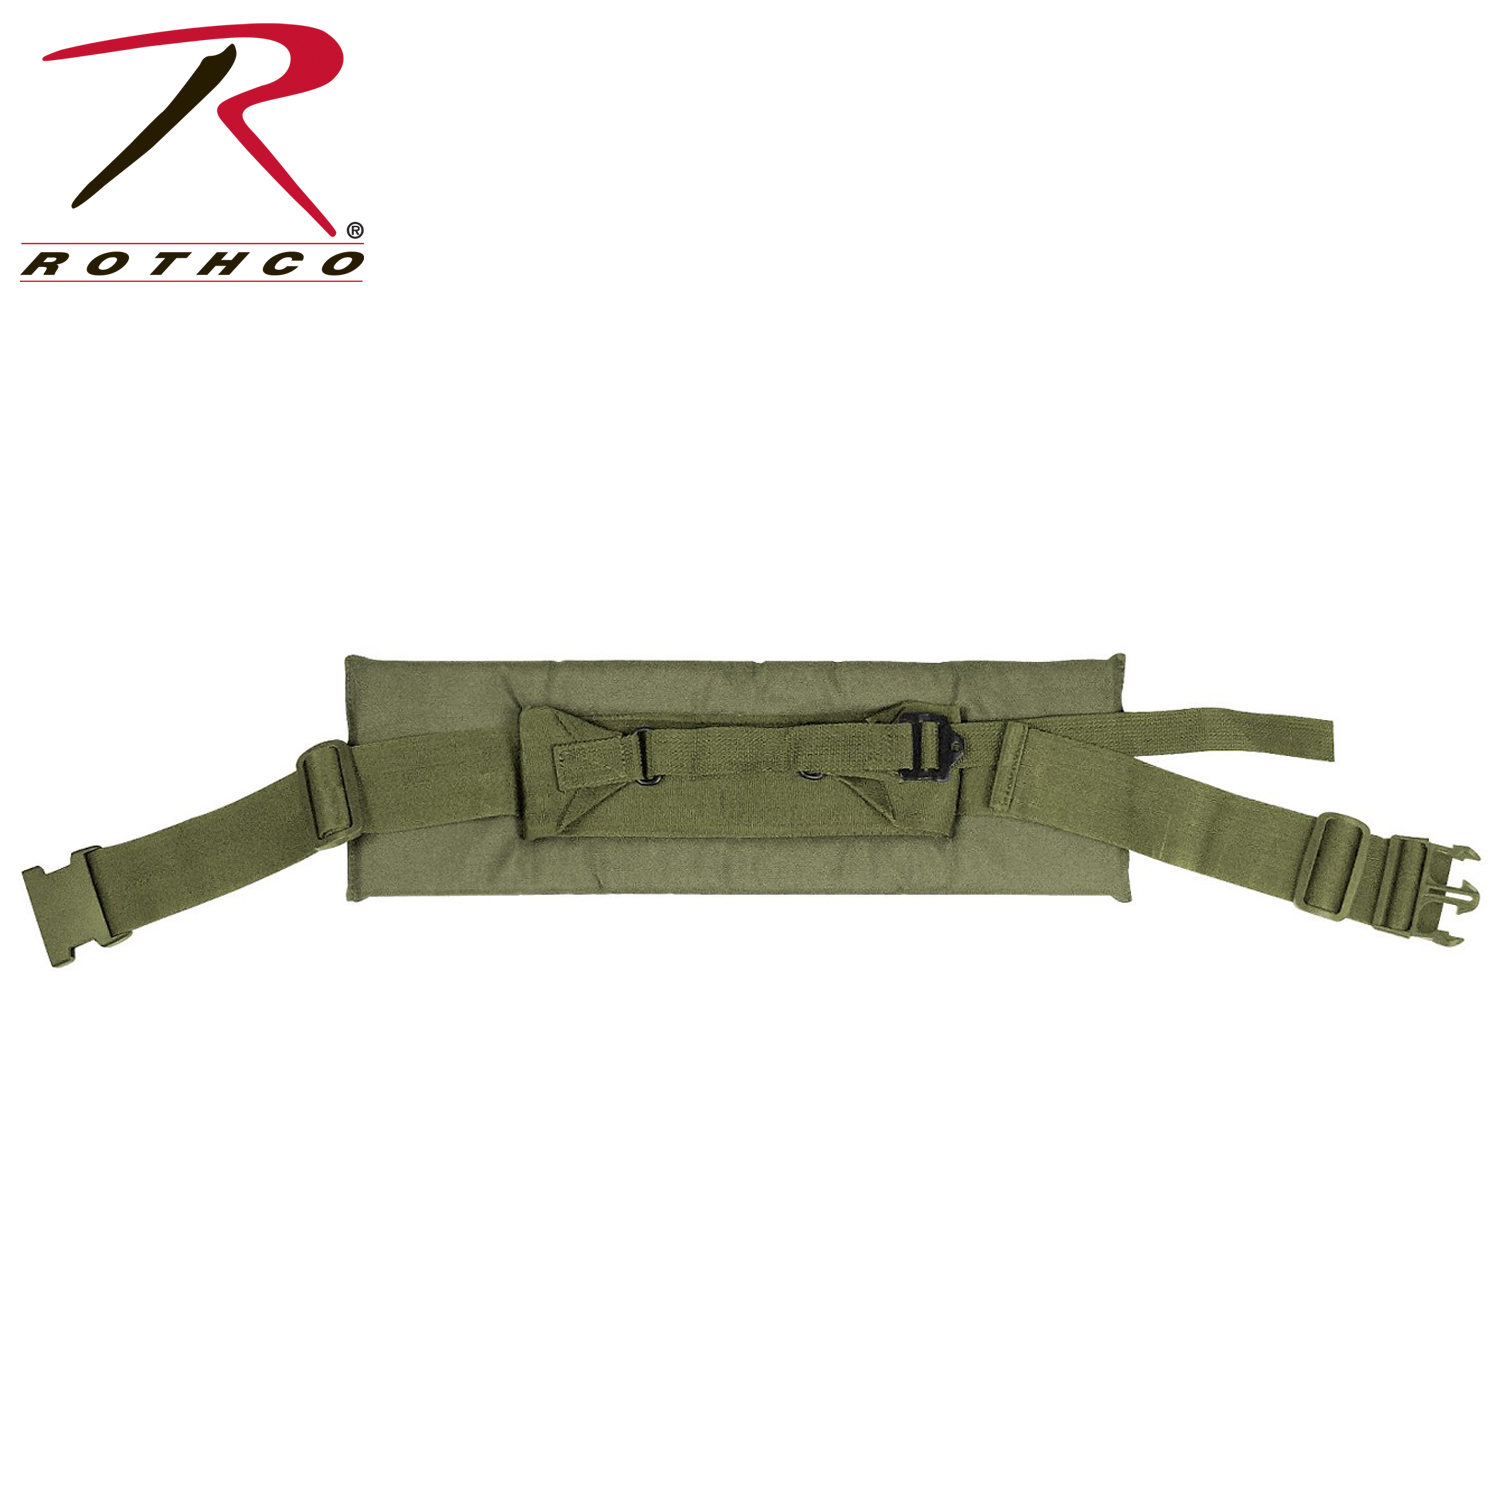 Rothco Enhanced Alice Pack With Frame